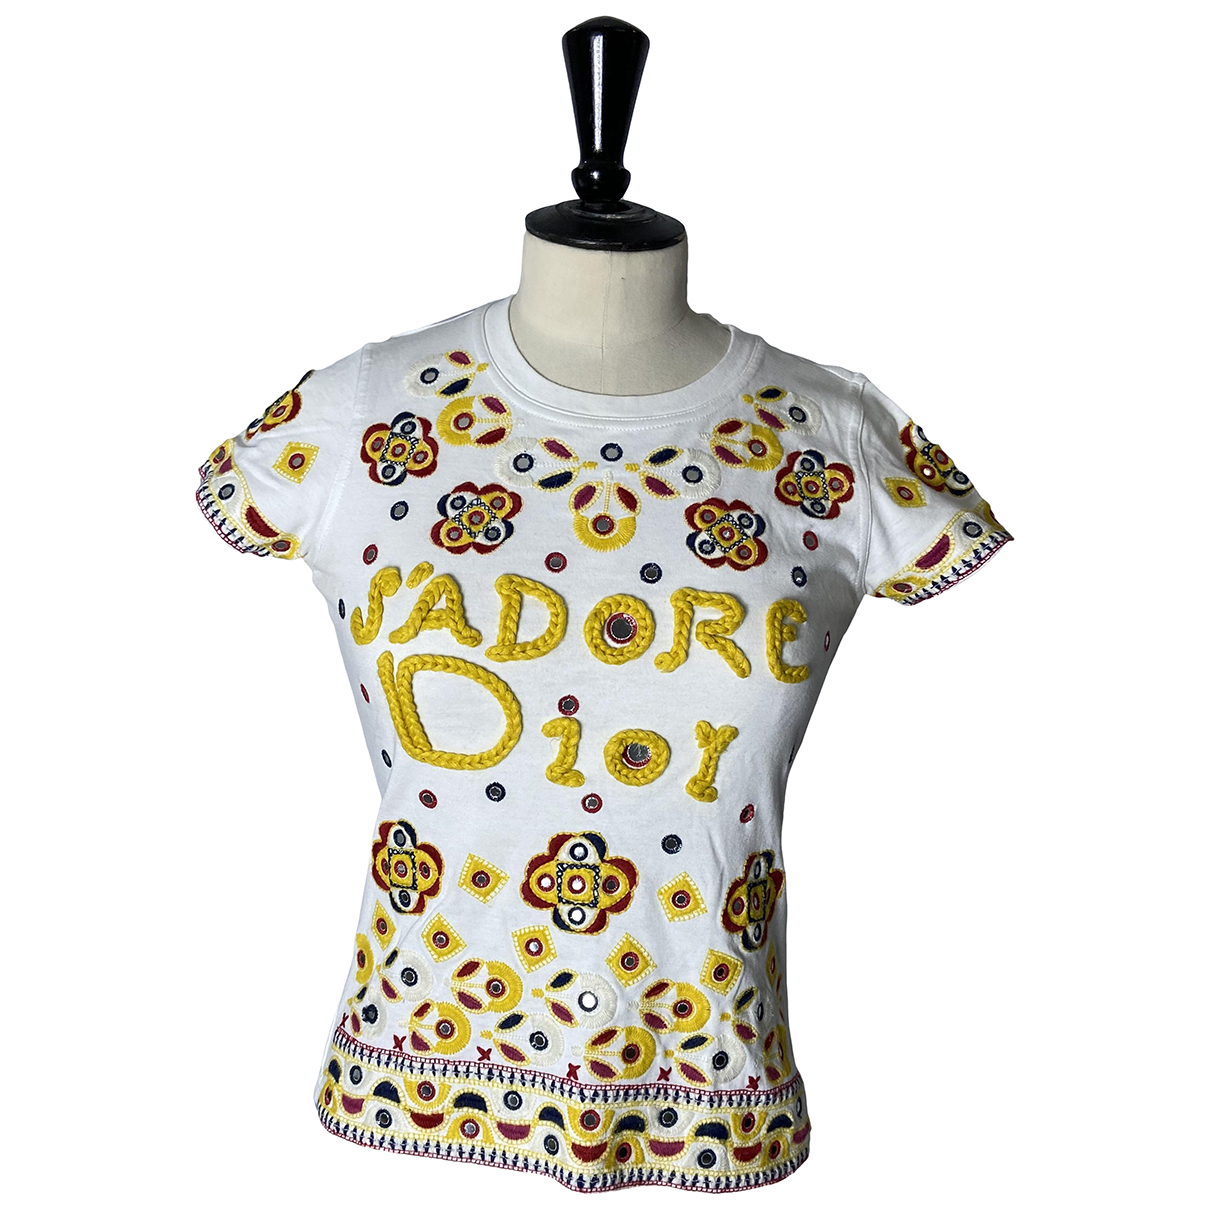 Dior \N White Cotton  top for Women 36 FR